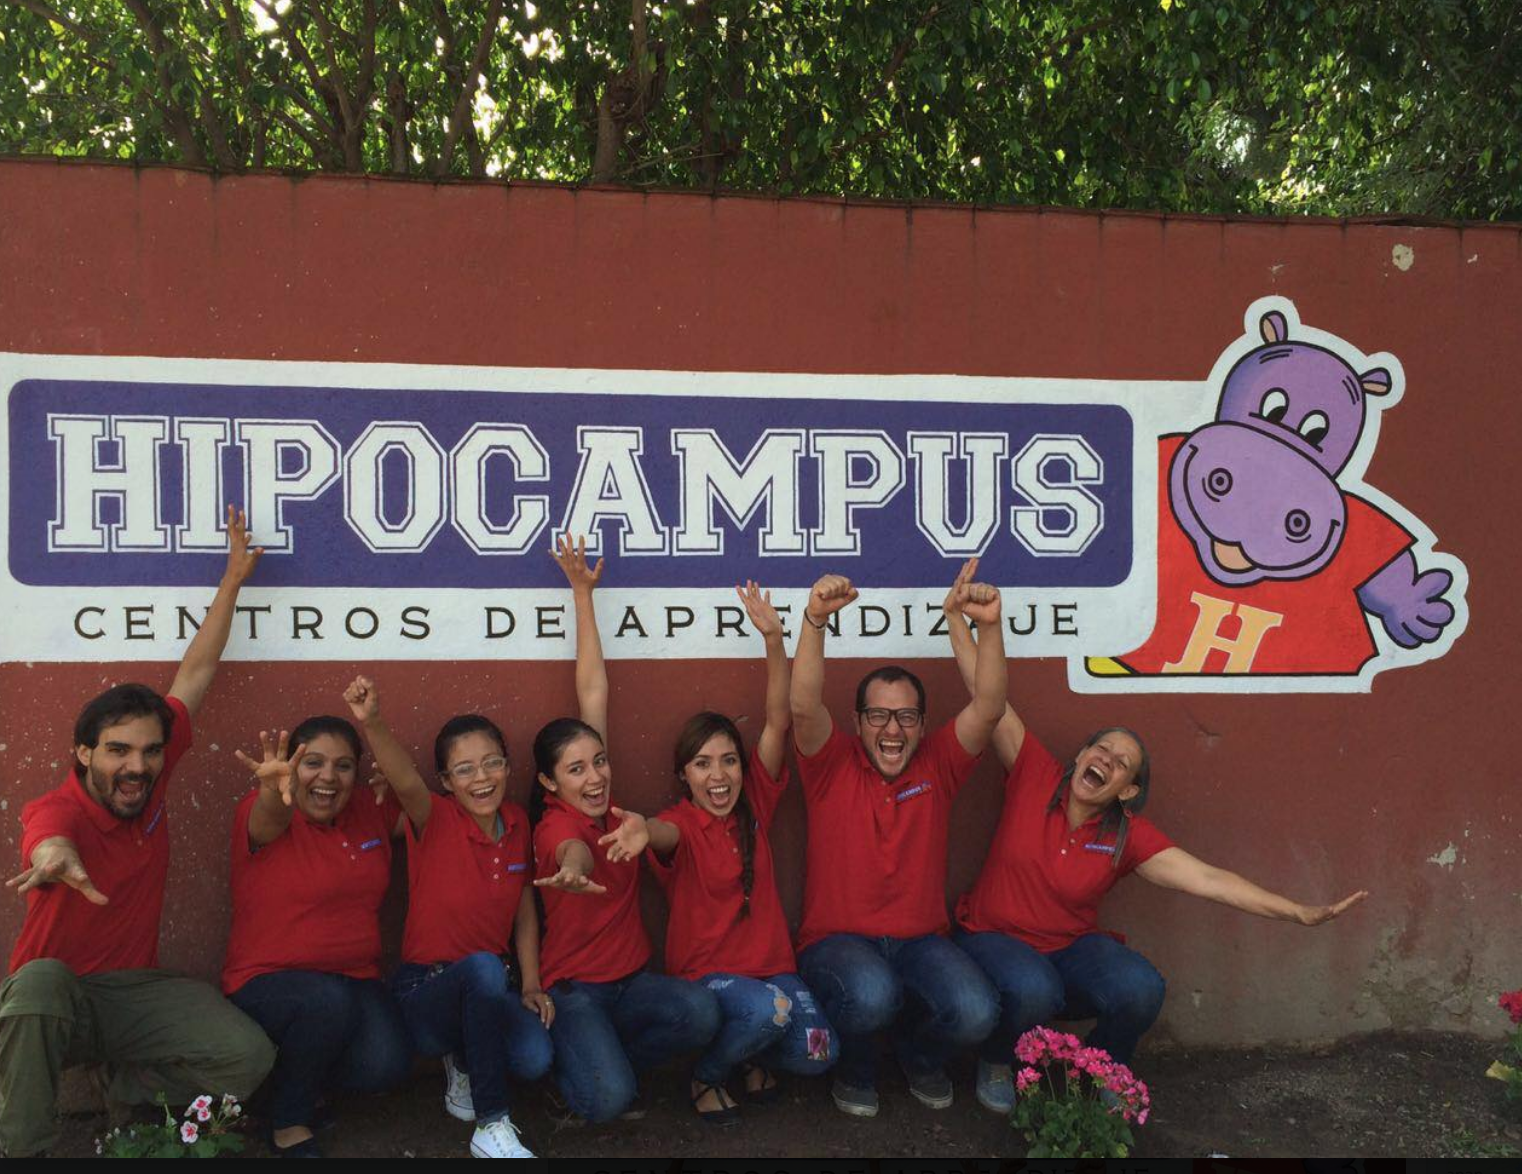 Team members at Hipocampus Centros de Aprendizaje (Mexico).